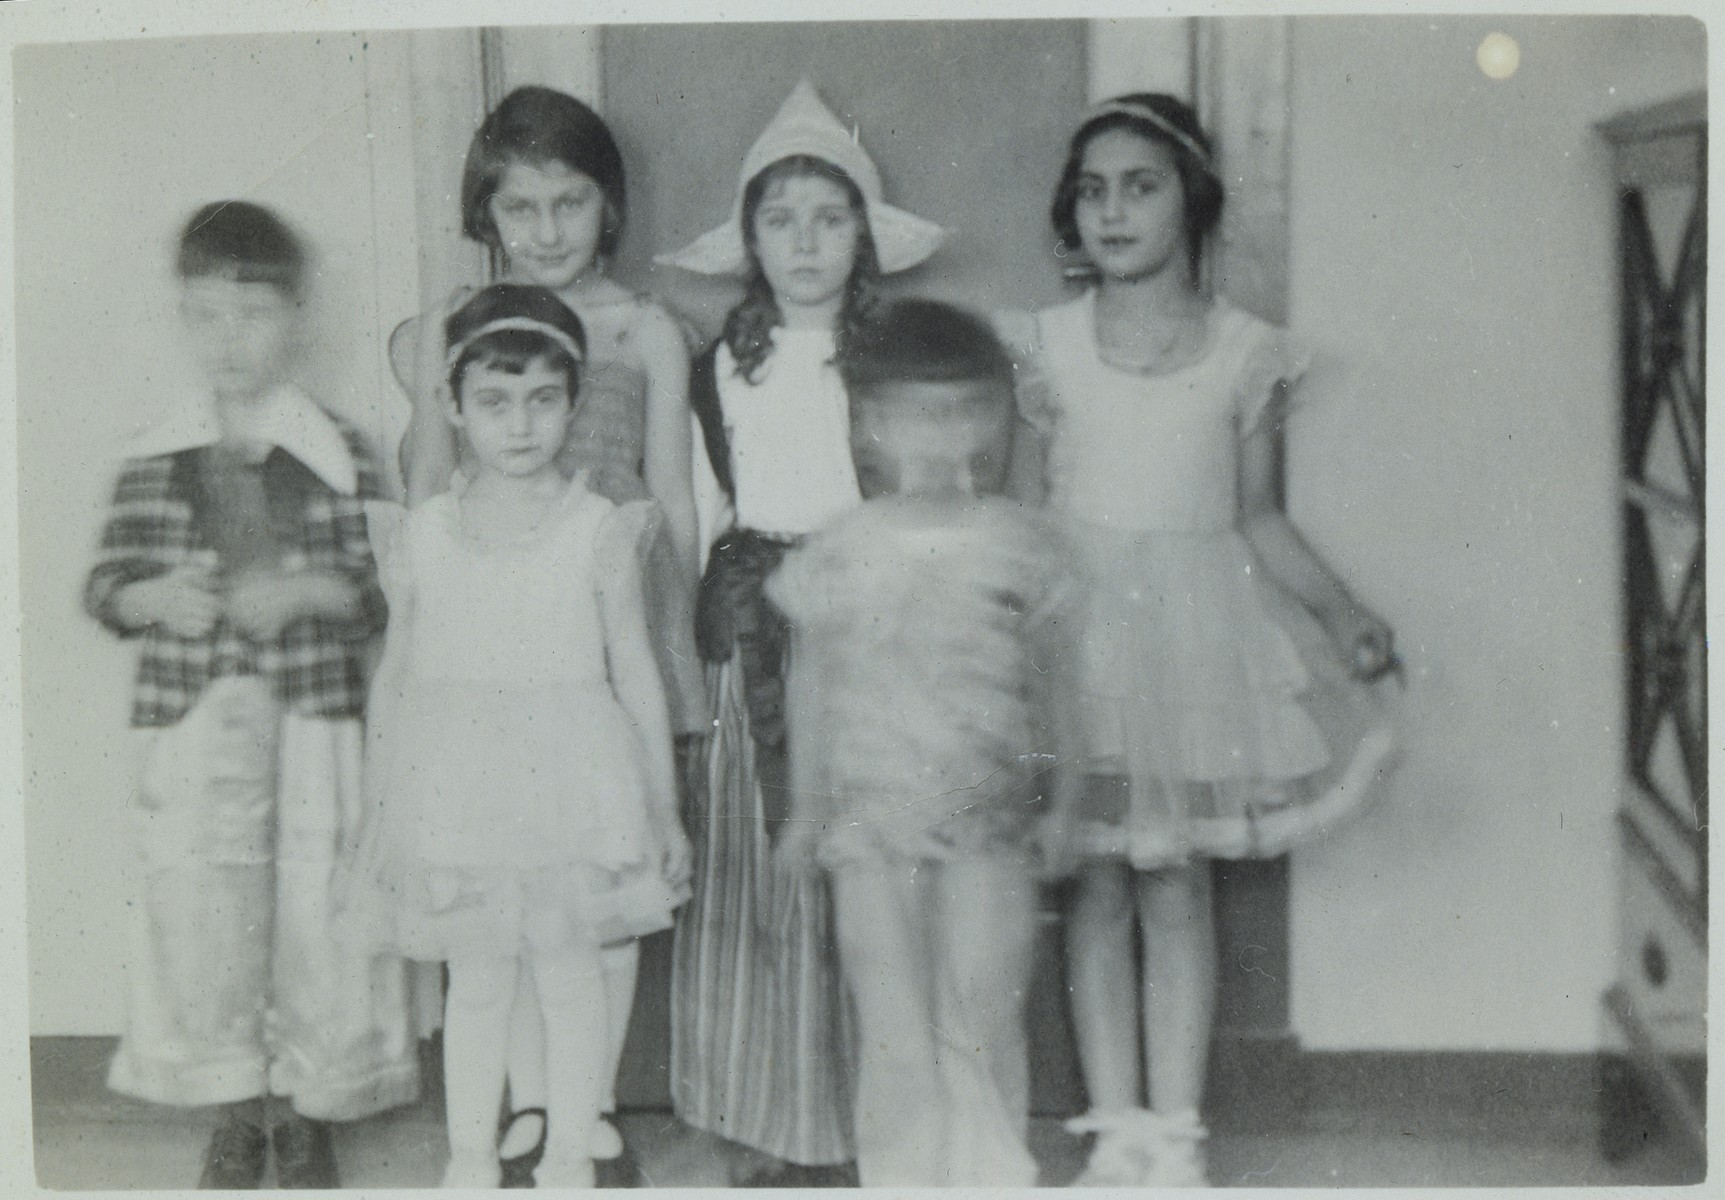 Group portrait of Jewish children wearing costumes for the Purim holiday.  Pictured from left to right are: unknown; Anne Frank; Evelyn Werthauer; Barbara Ledermann; unknown; Margot Frank.